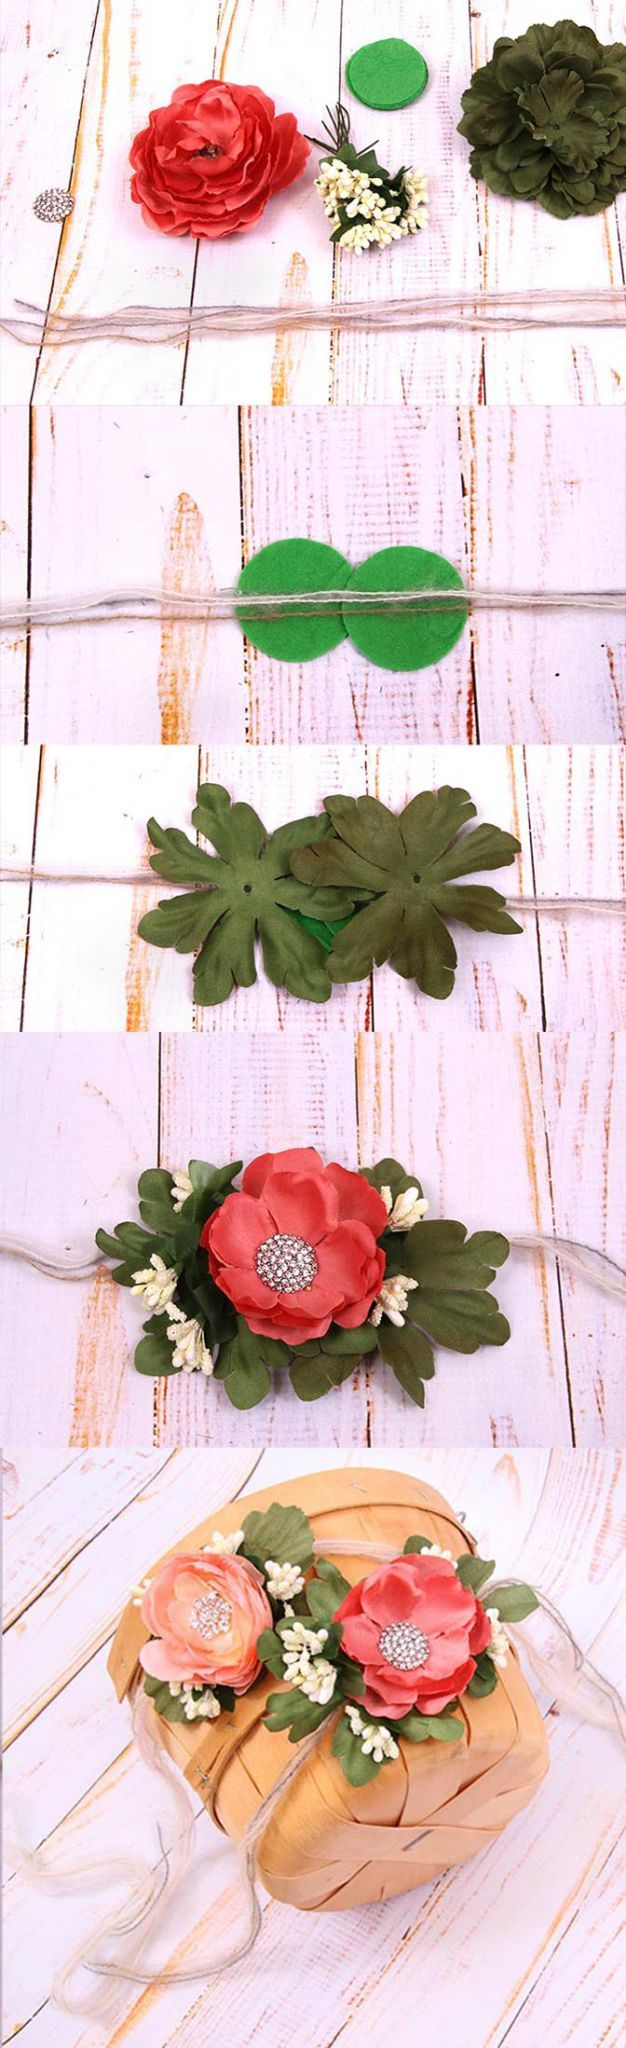 Baby flower headband in 2018 create pinterest baby flower baby flower headbands diy baby headband ideas learn how to make a beautiful and ethereal flower headband perfect for newborn or baby photos izmirmasajfo